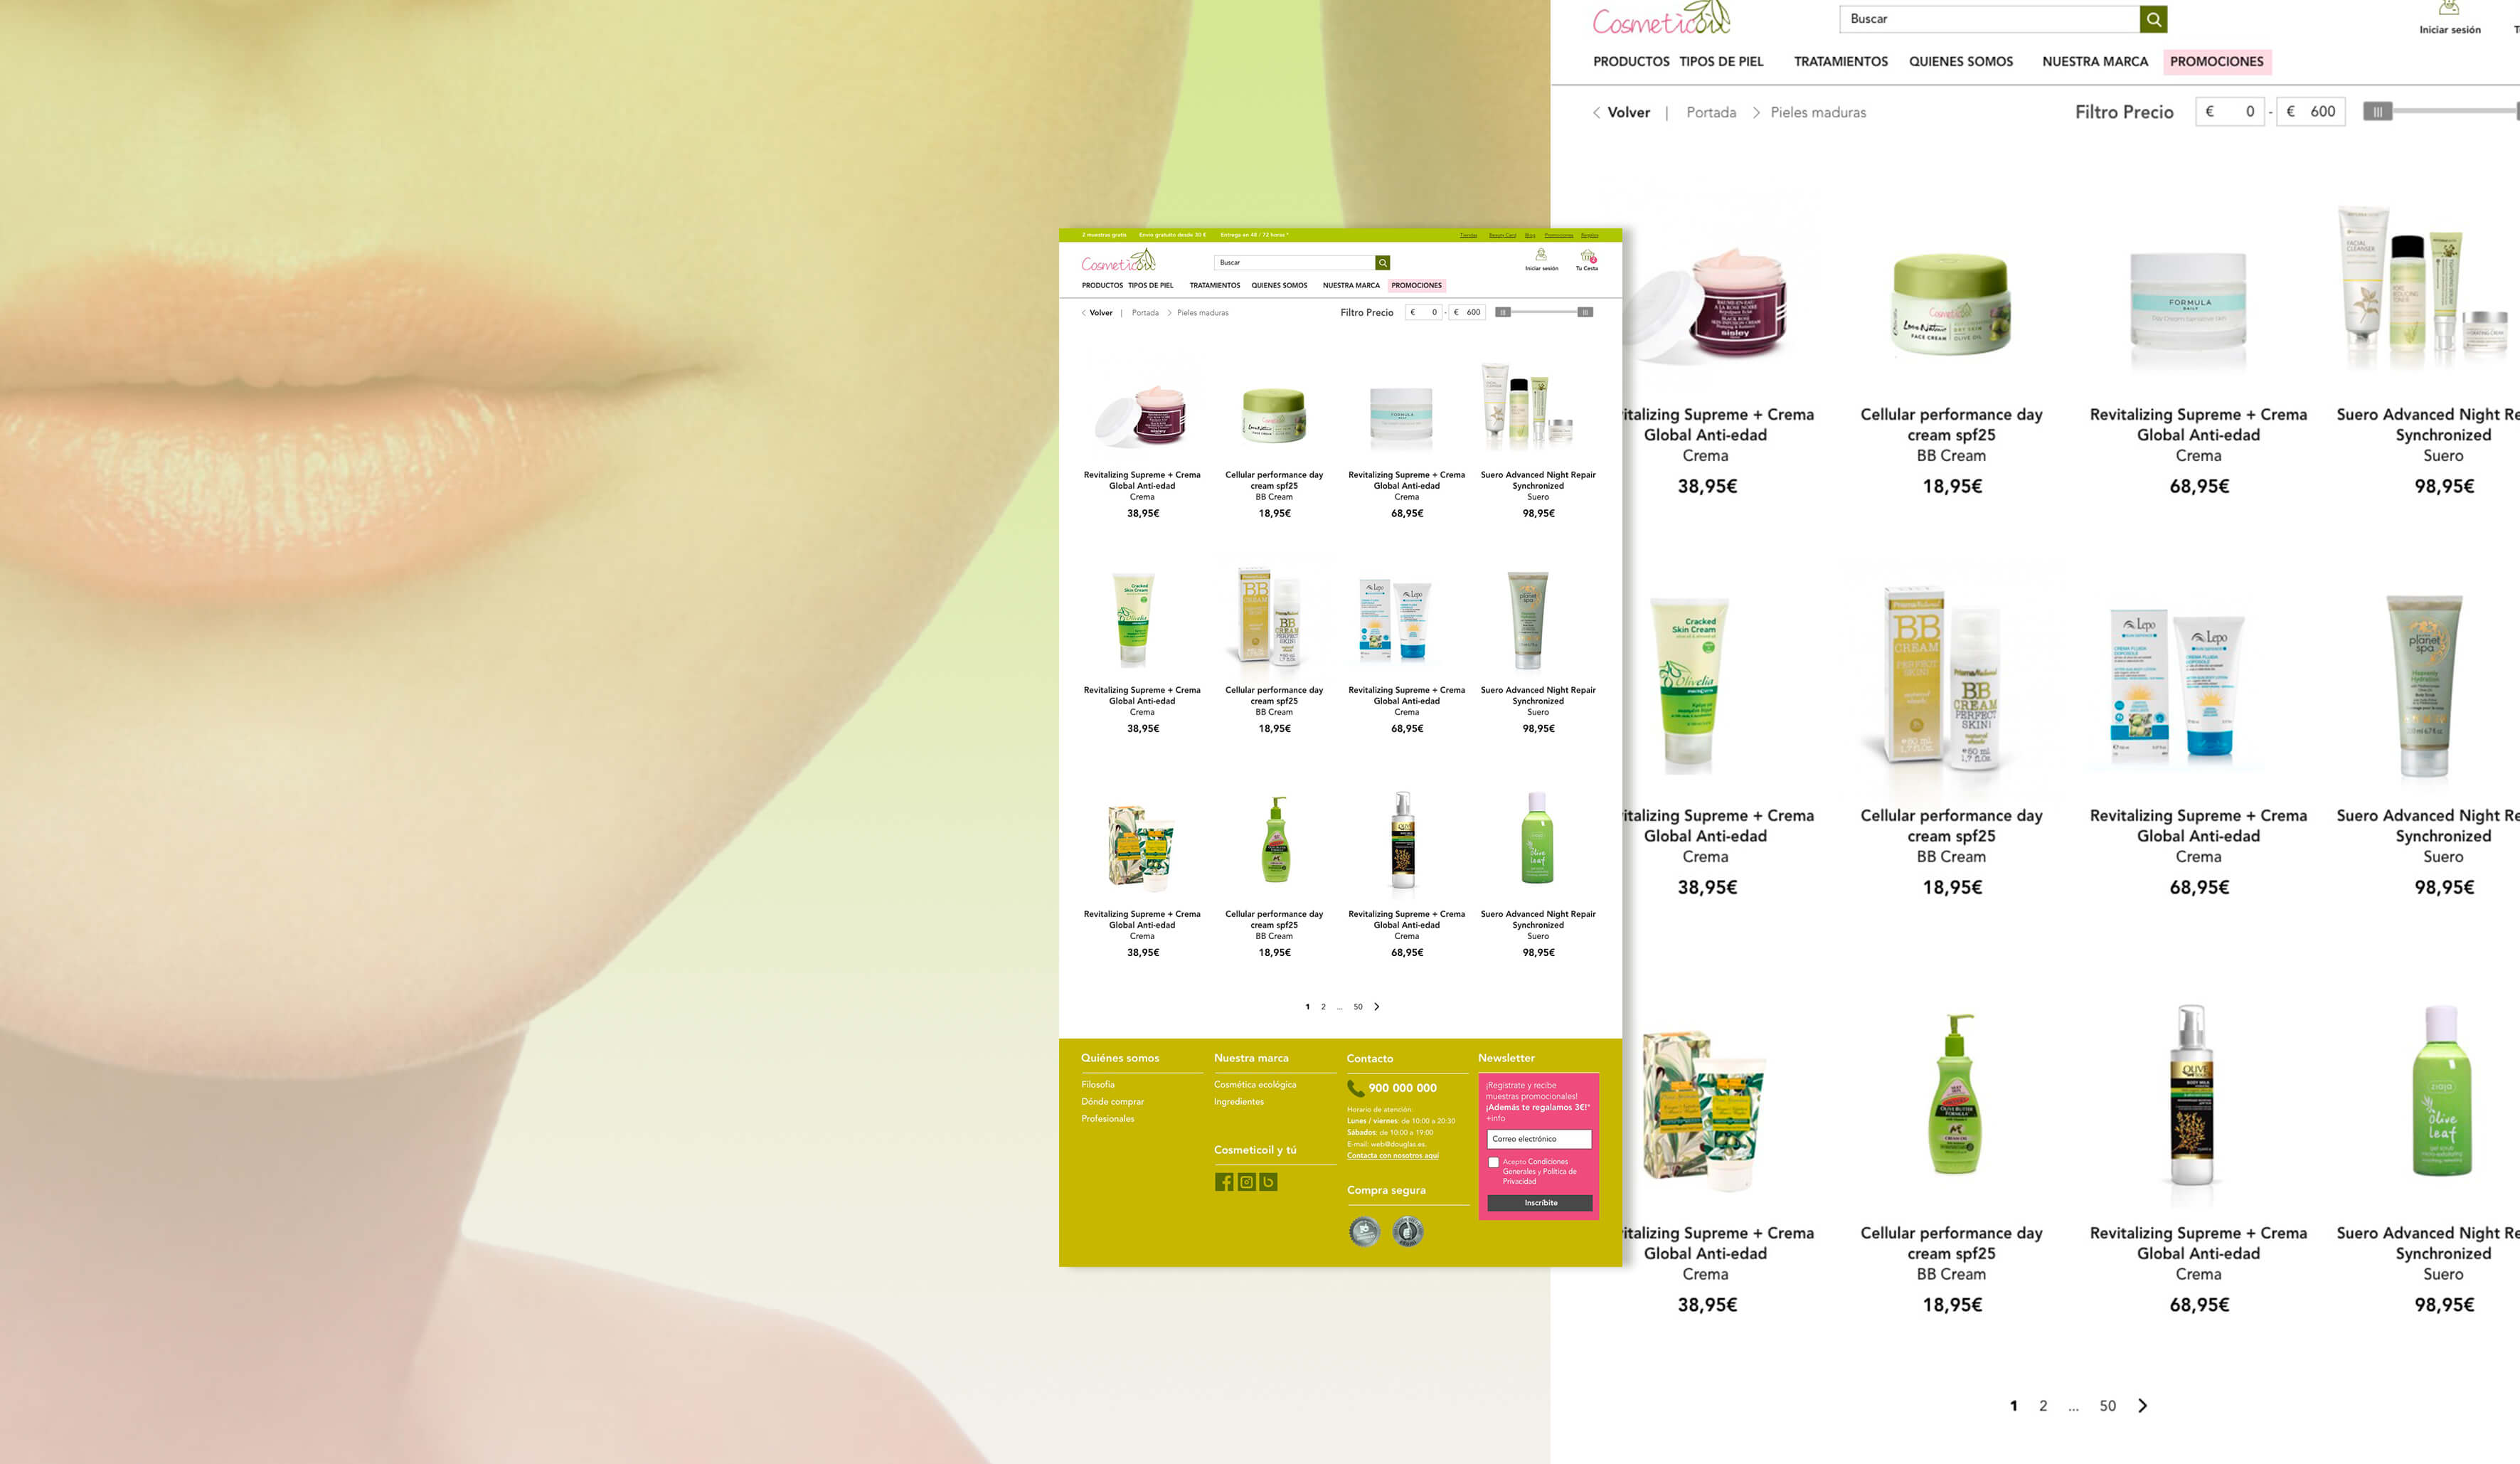 cosmeticoil-products